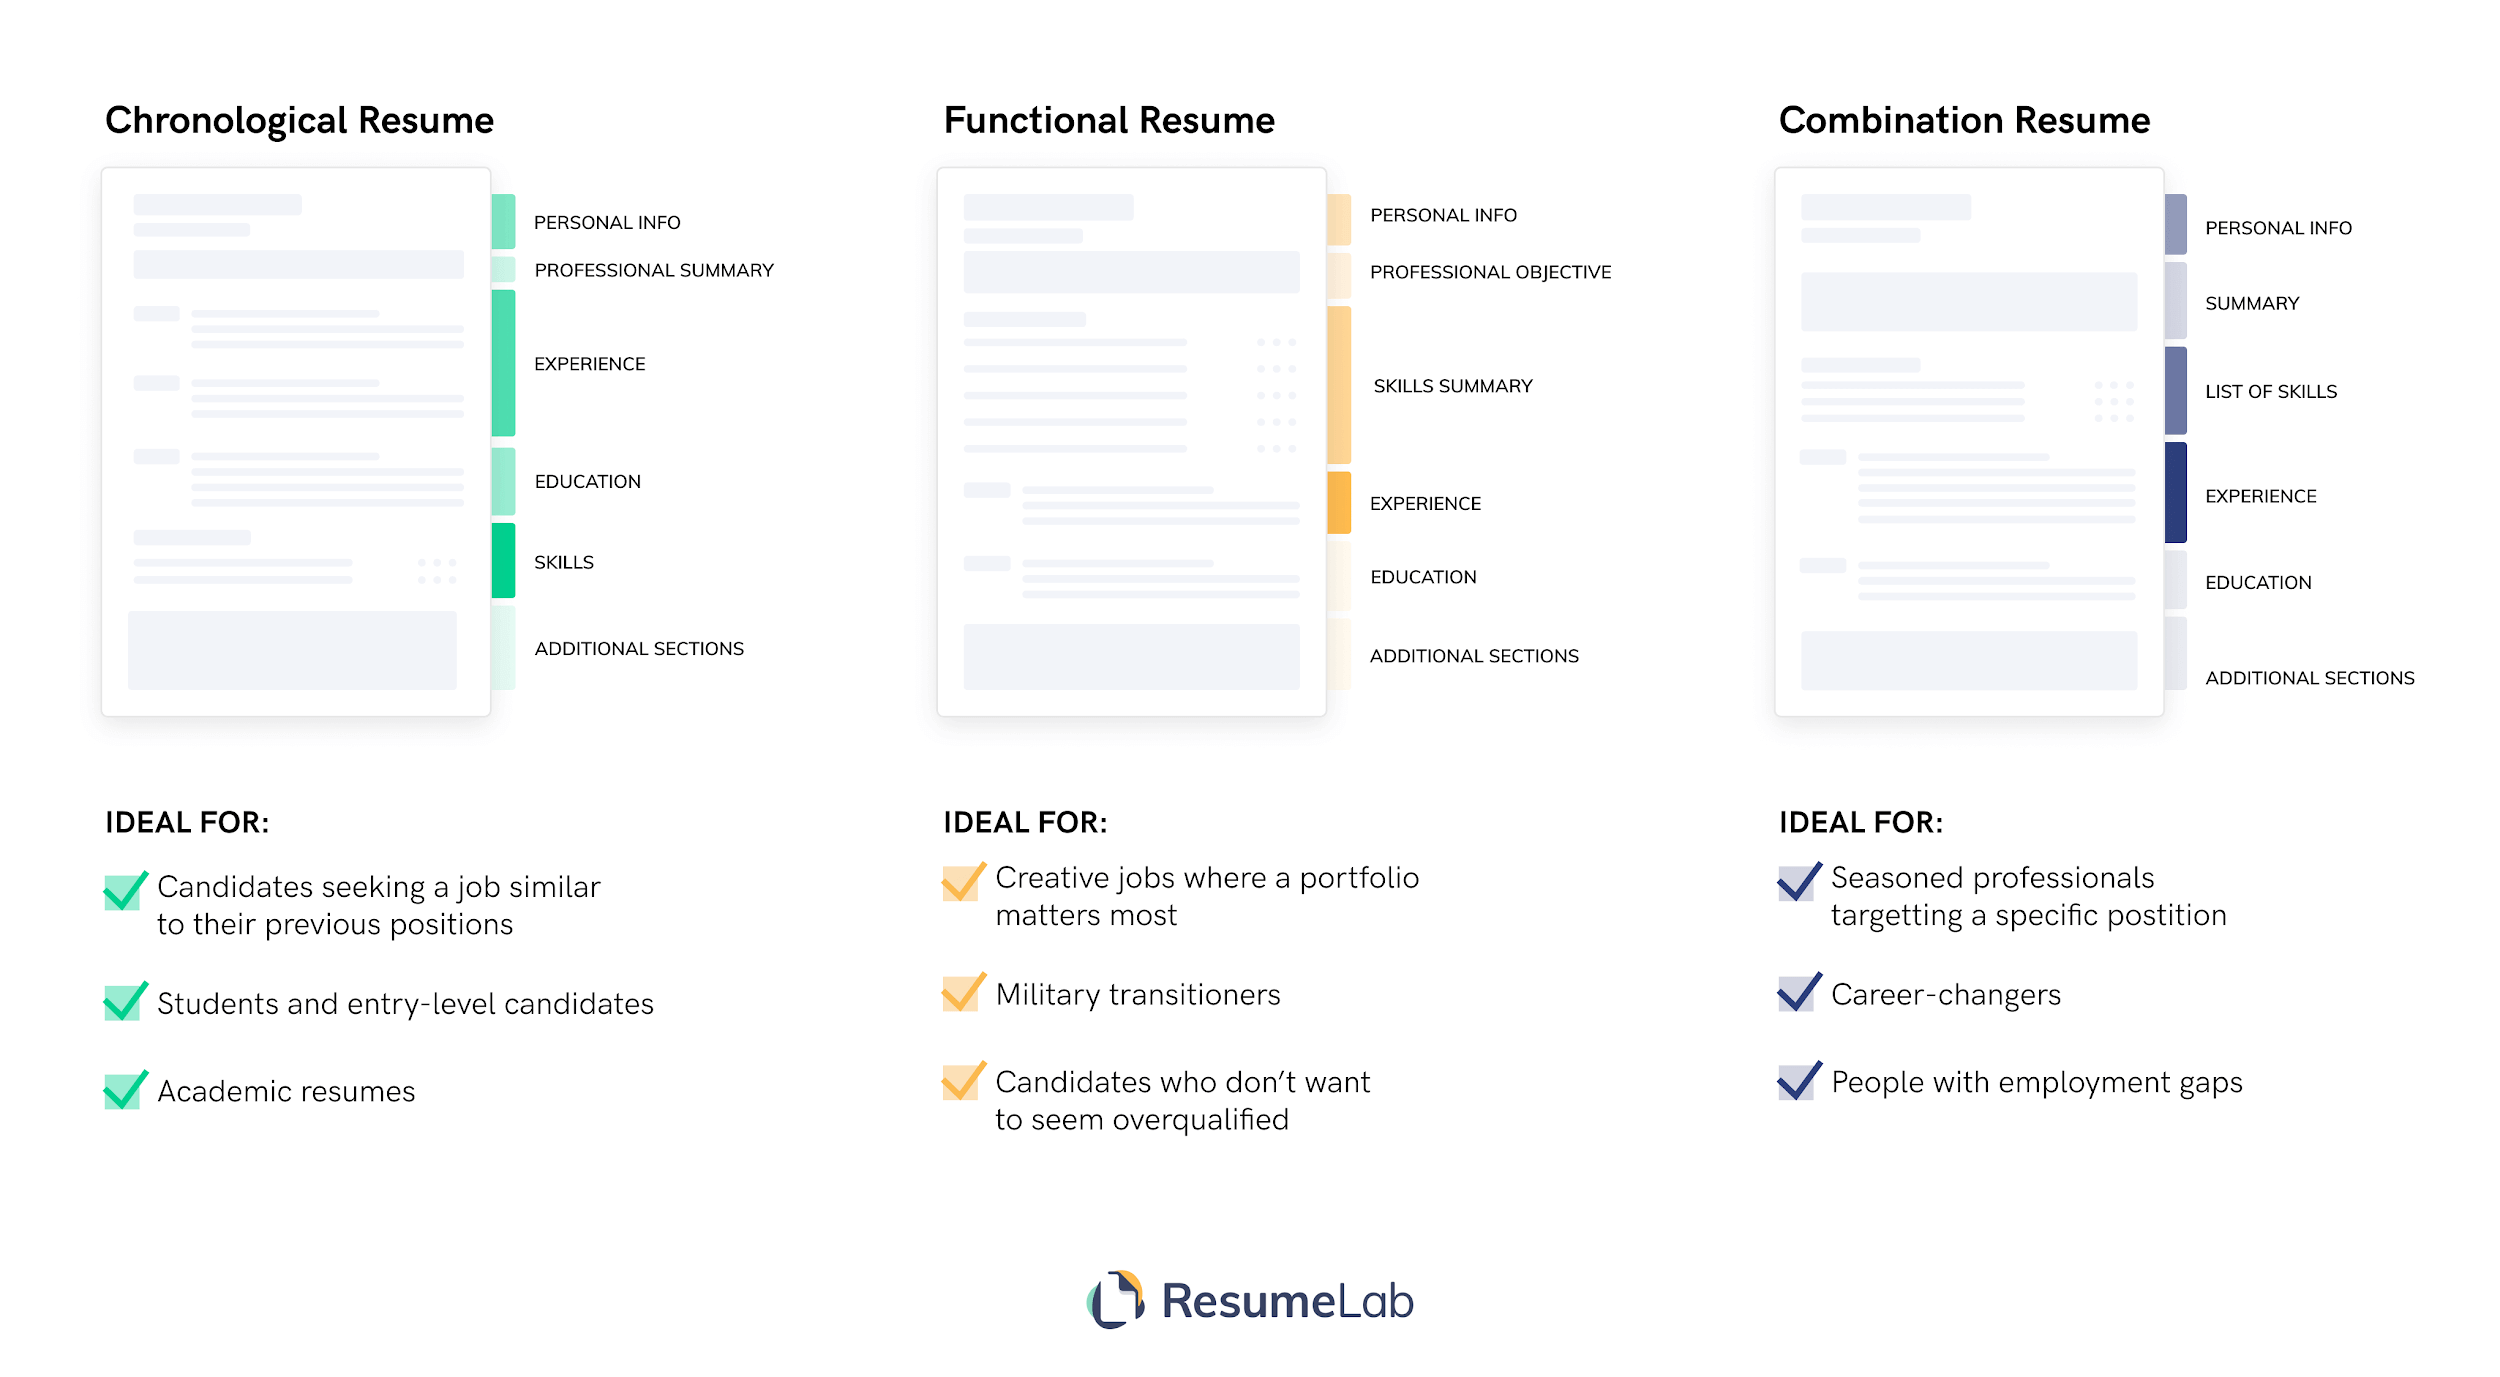 Best Resume Styles Comparison